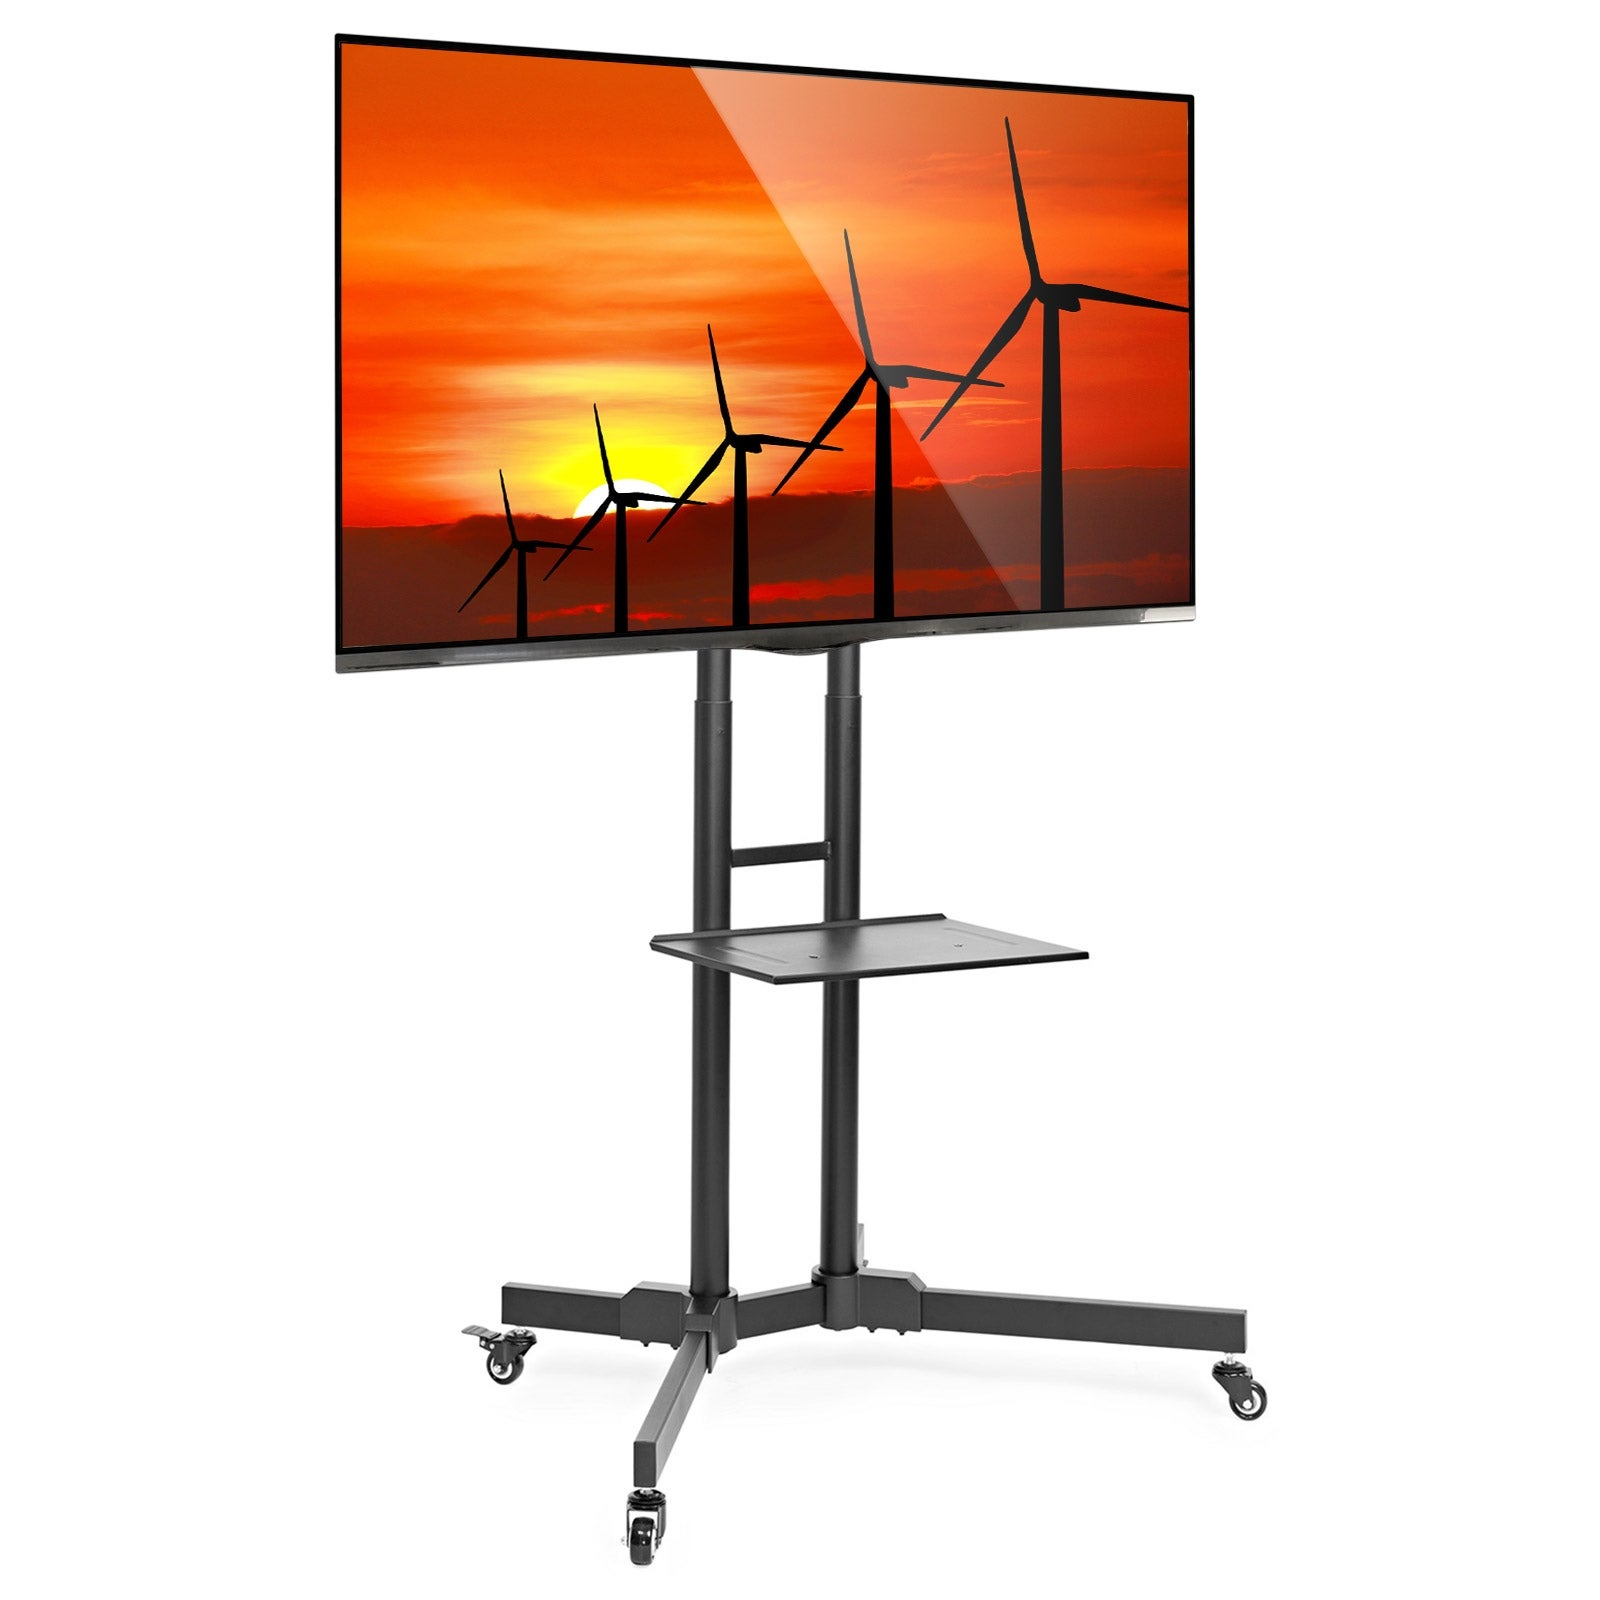 Mobile TV Stand AV Cart Office Home with One Shelf for 32-65 inch TV